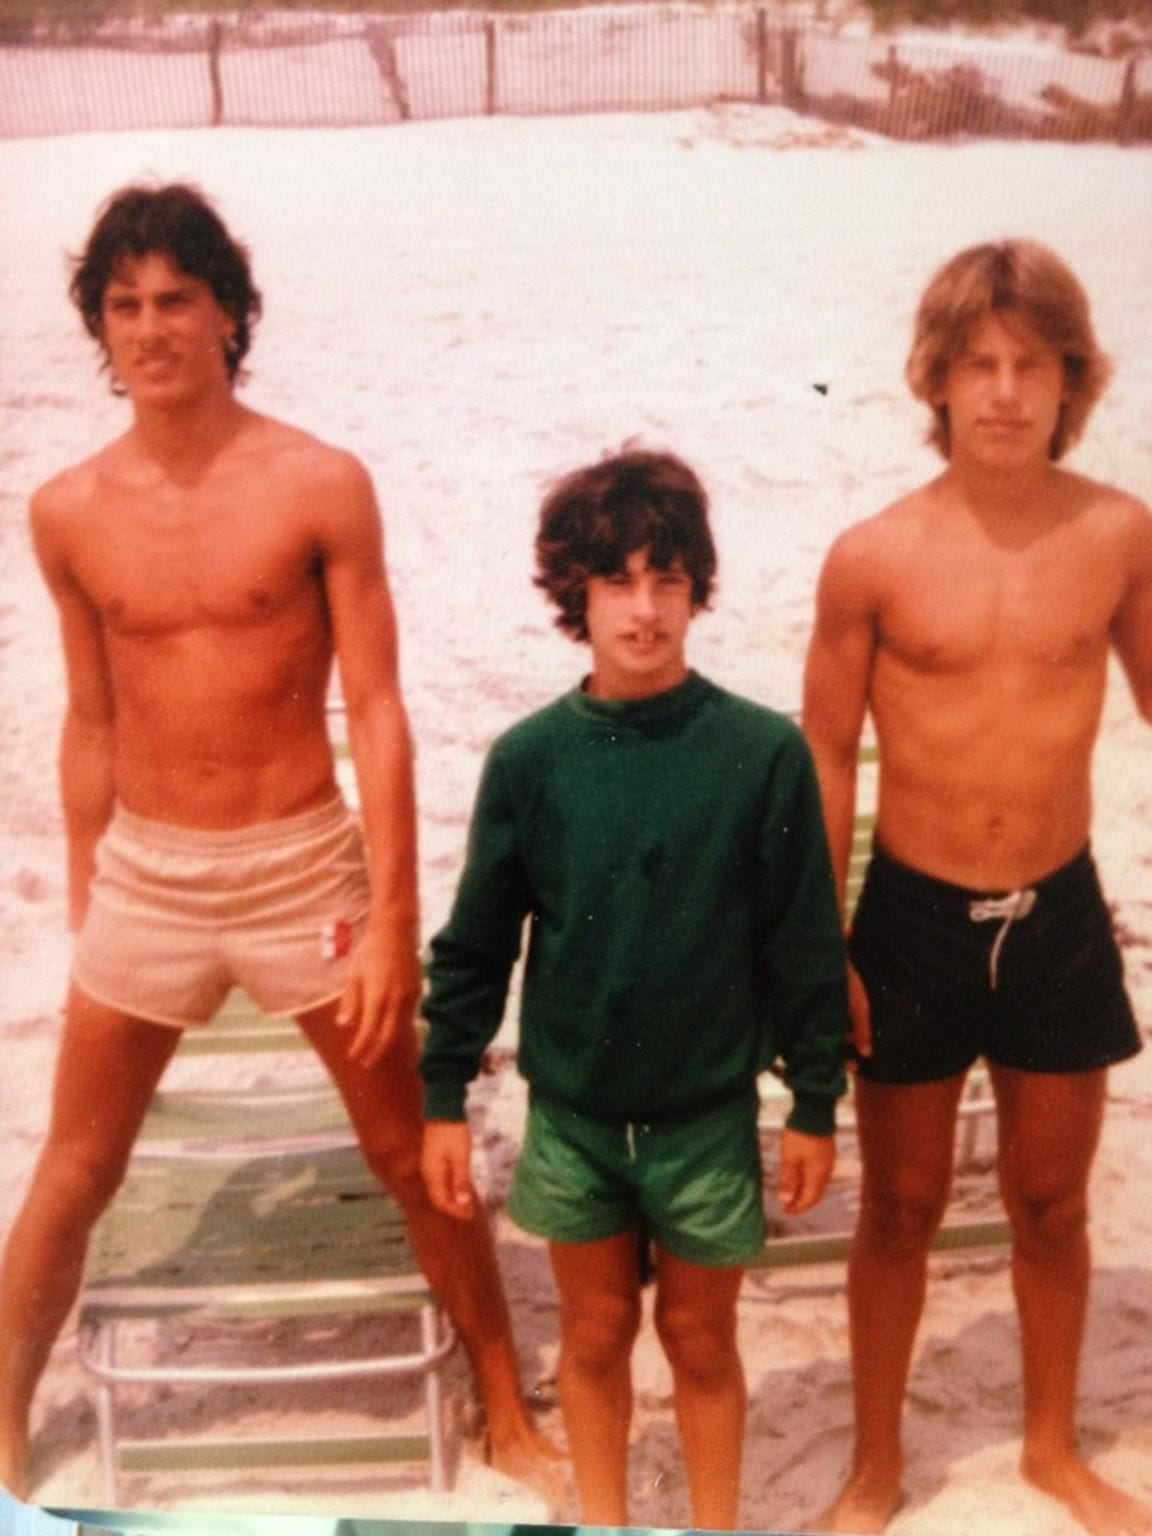 With his brothers, Kevin and Rick, in New Jersey.